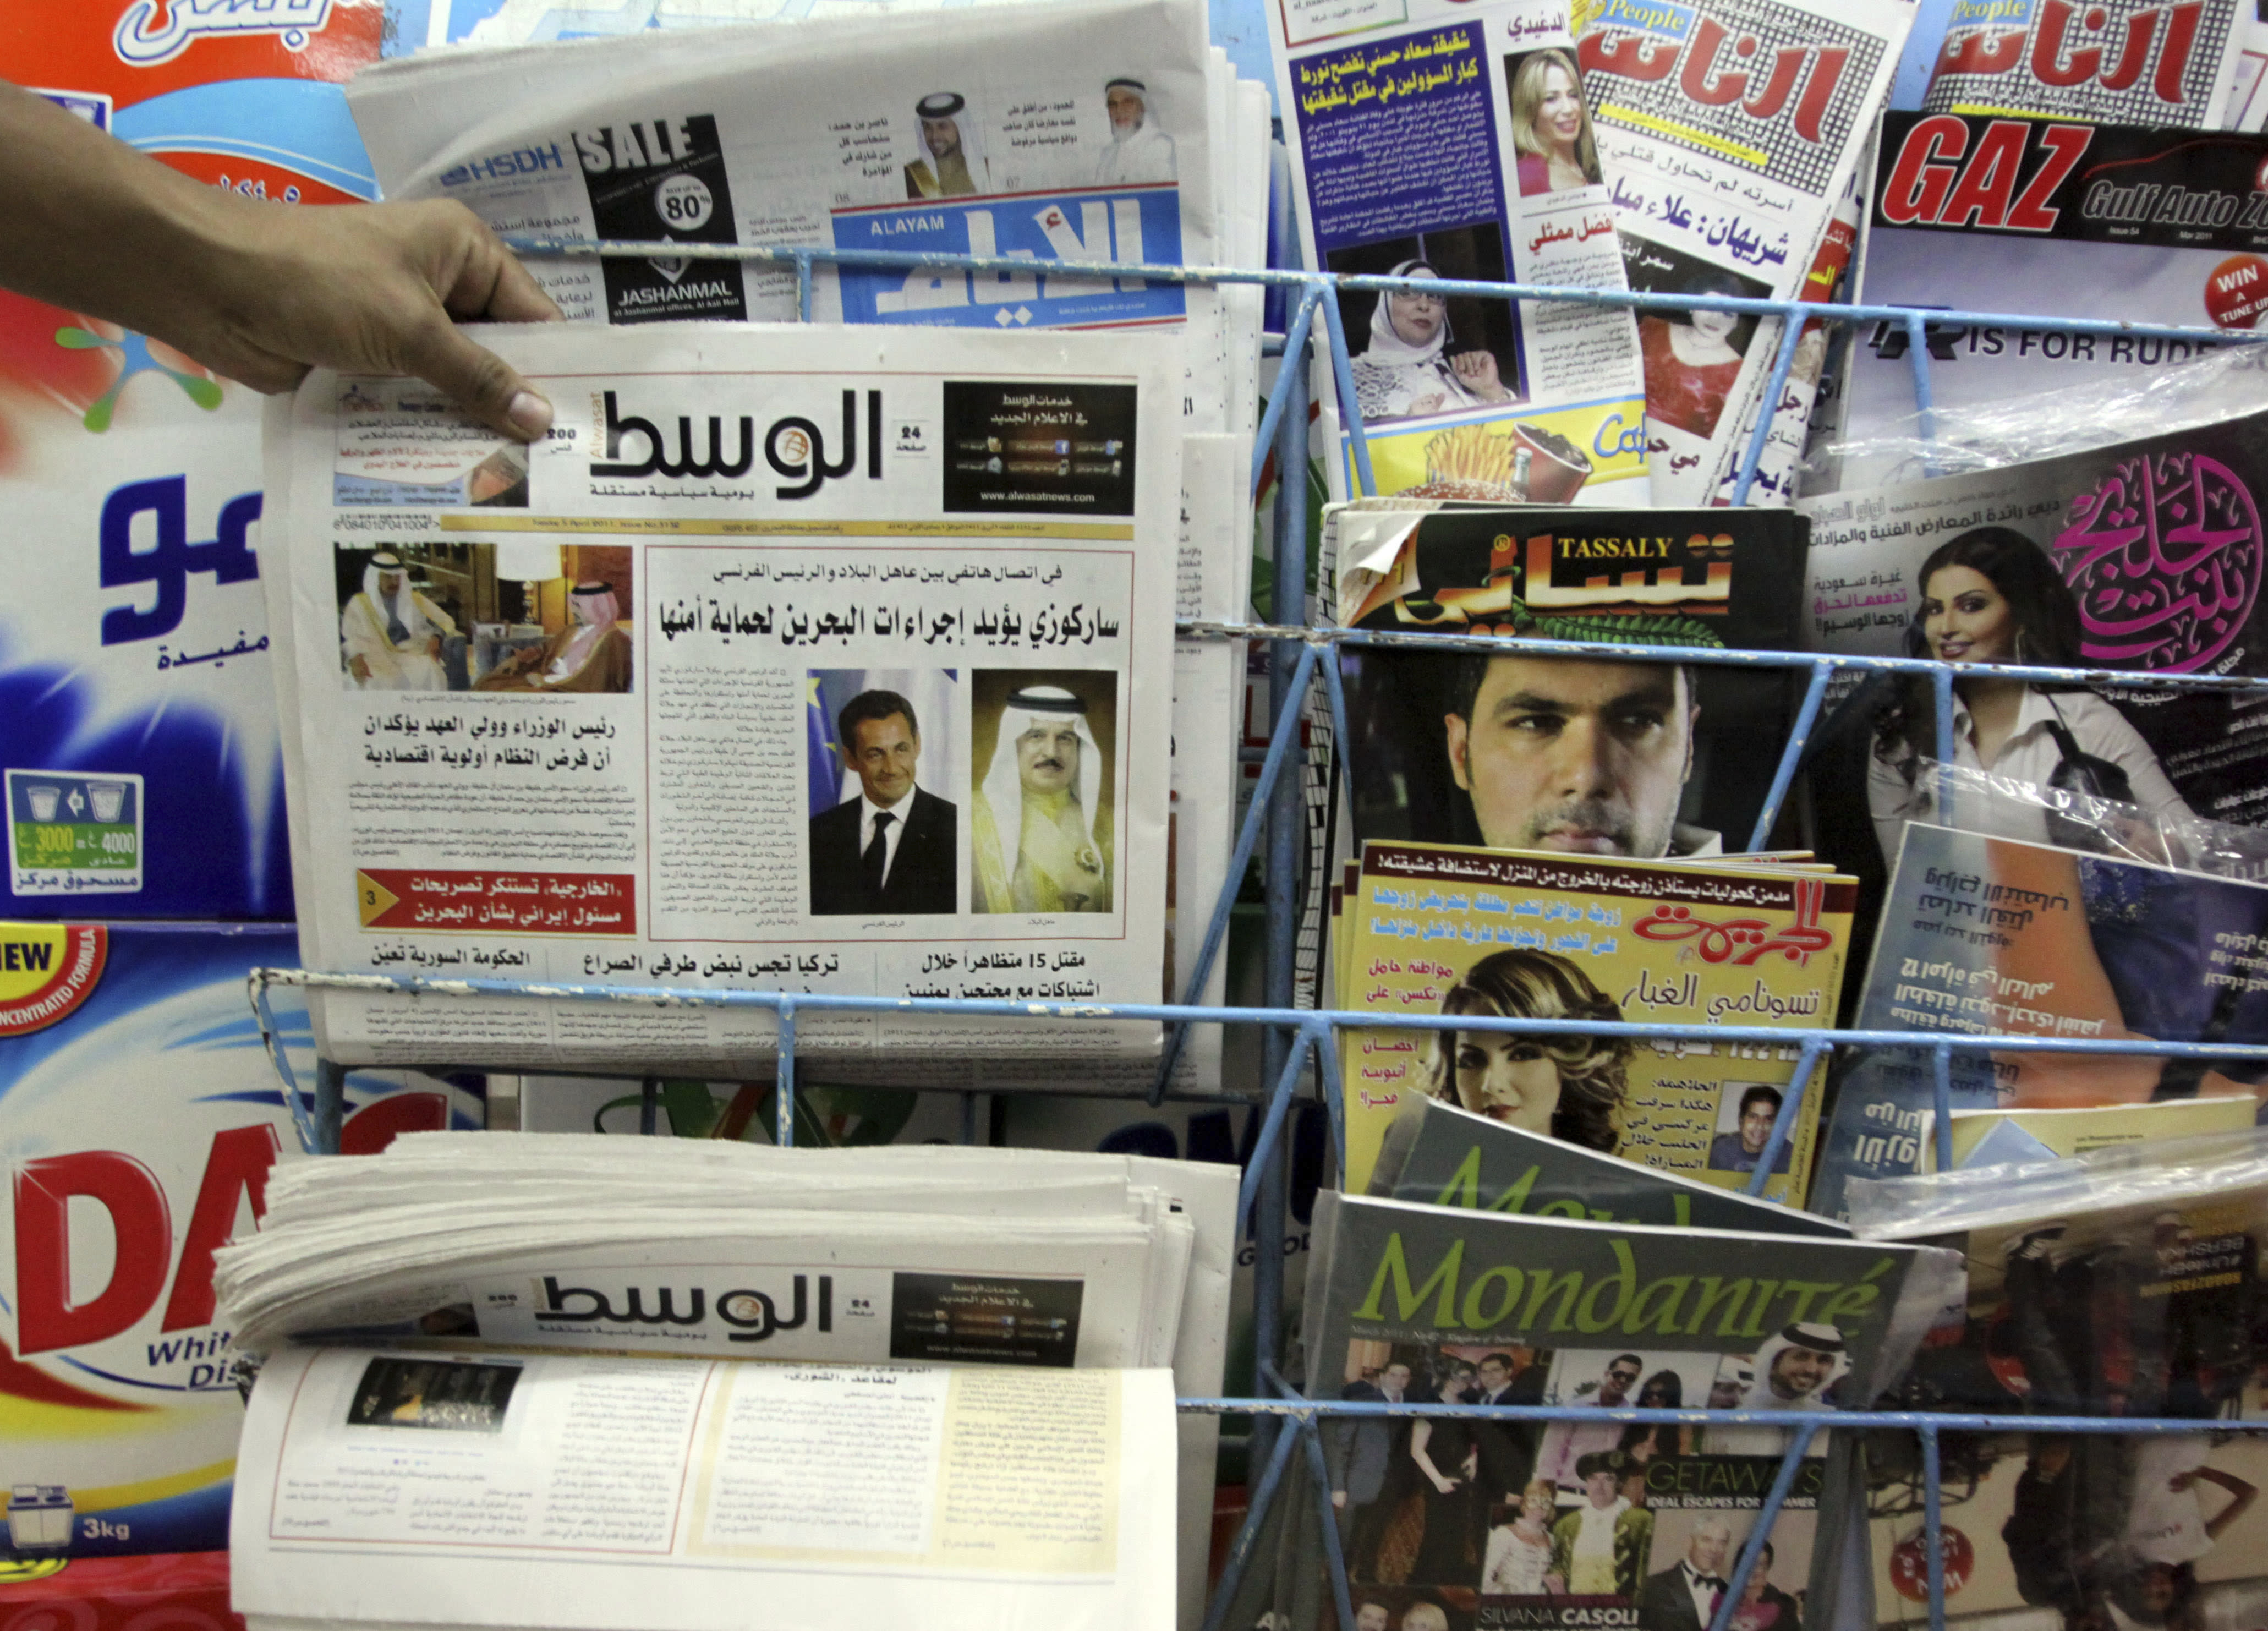 Bahrain bans paper from publishing online after protests